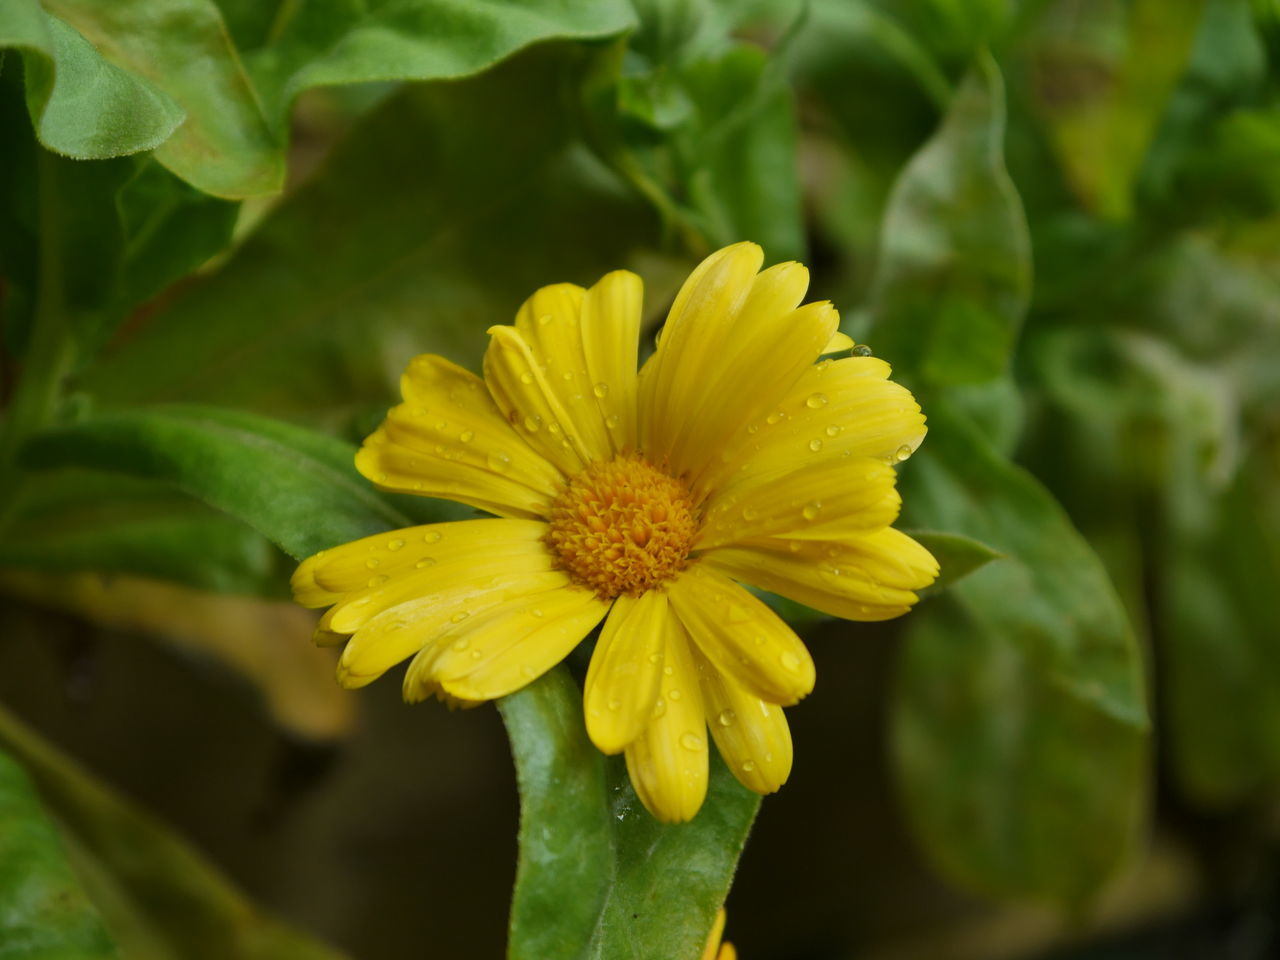 Close-Up Of Yellow Flower Growing Outdoors